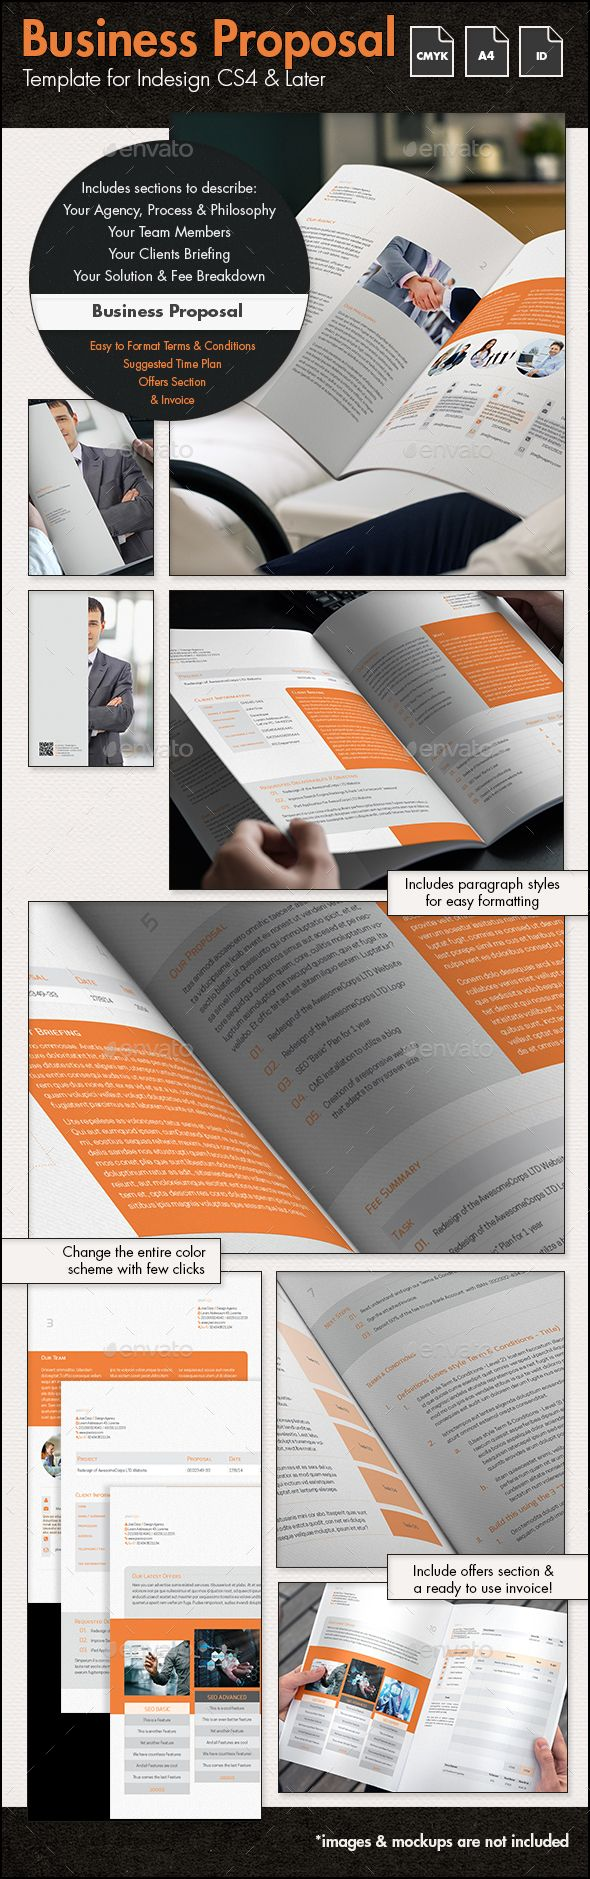 Business Proposal Template InDesign INDD design Download